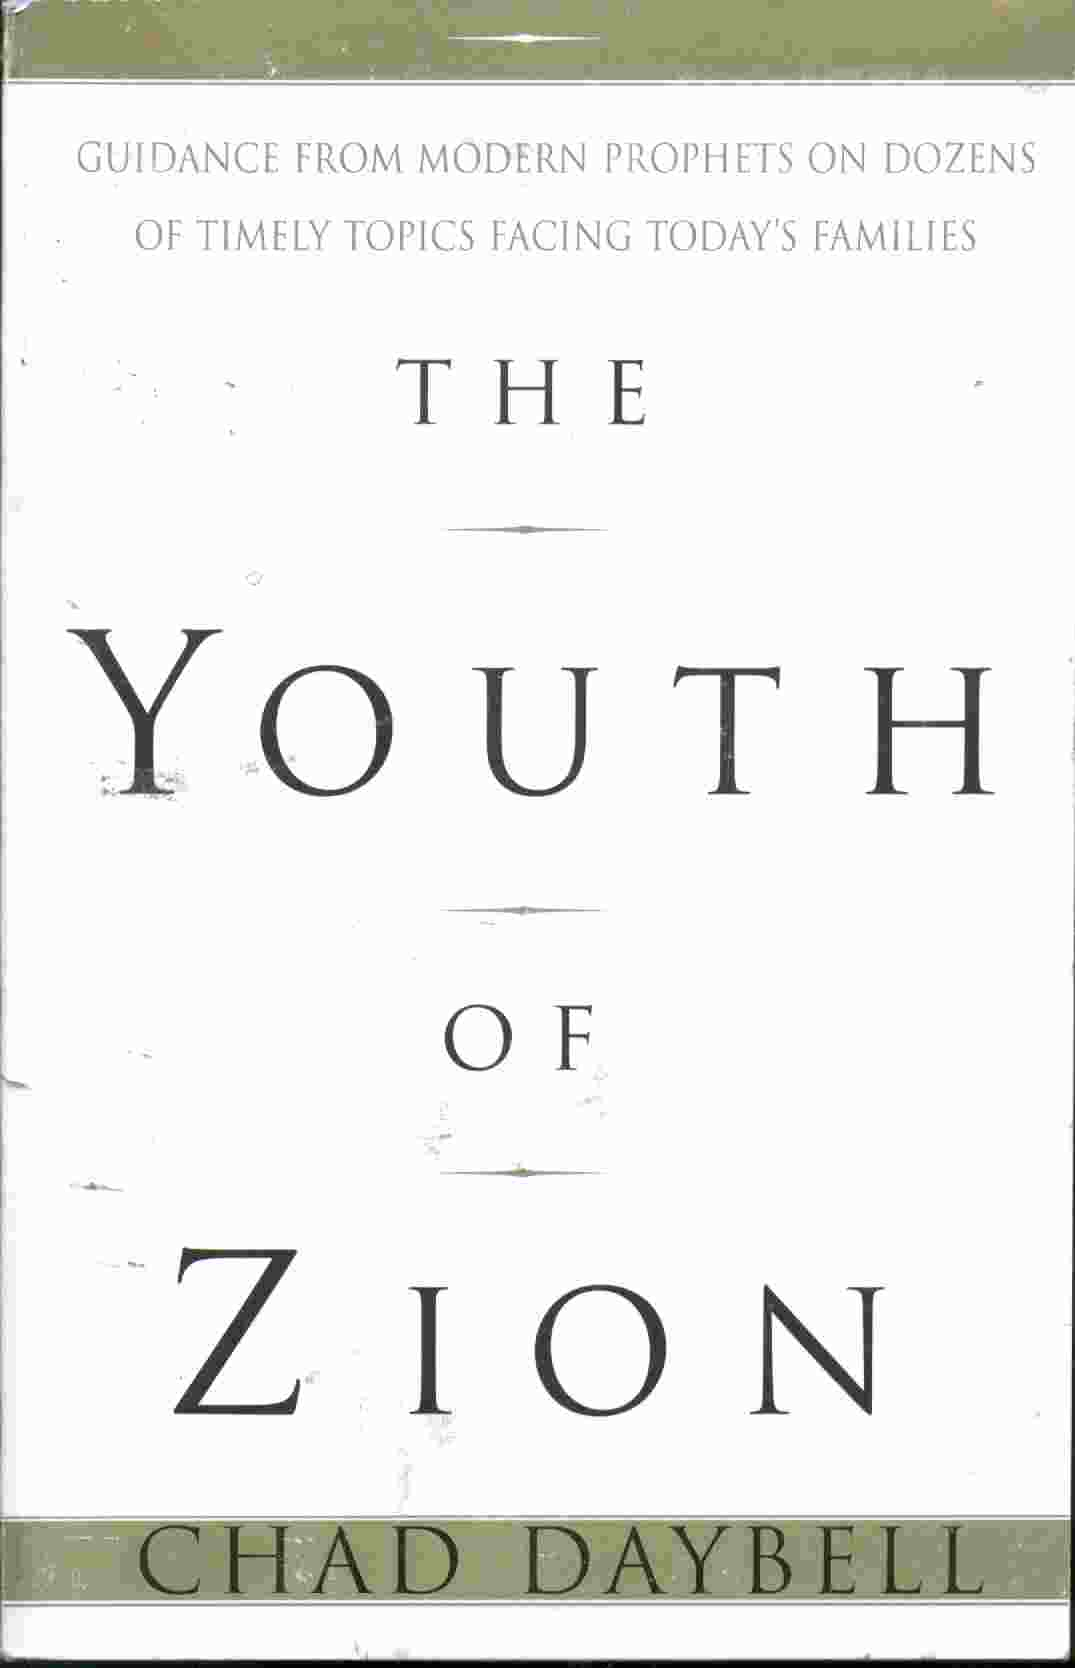 THE YOUTH OF ZION - Guidance from the Modern Prophets on Dozens of Timely Topics Facing Today's Families, Daybell, Chad